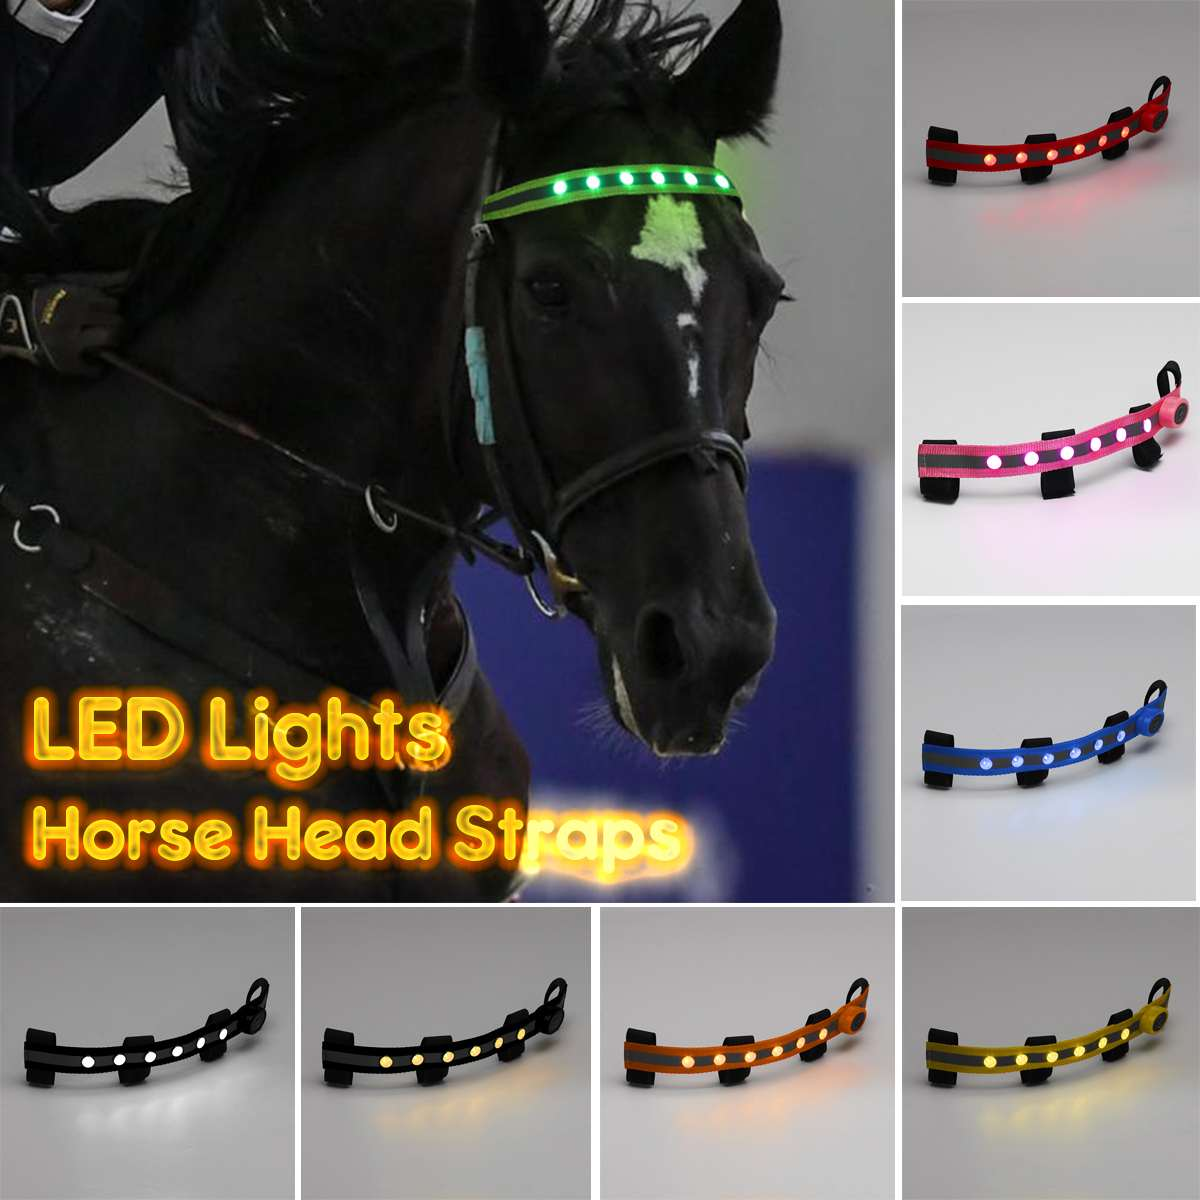 LED Horse Head Straps Equestrian Head Straps Night Visible Outdoor Flashing Belt Horse Riding Horse Headband Lights